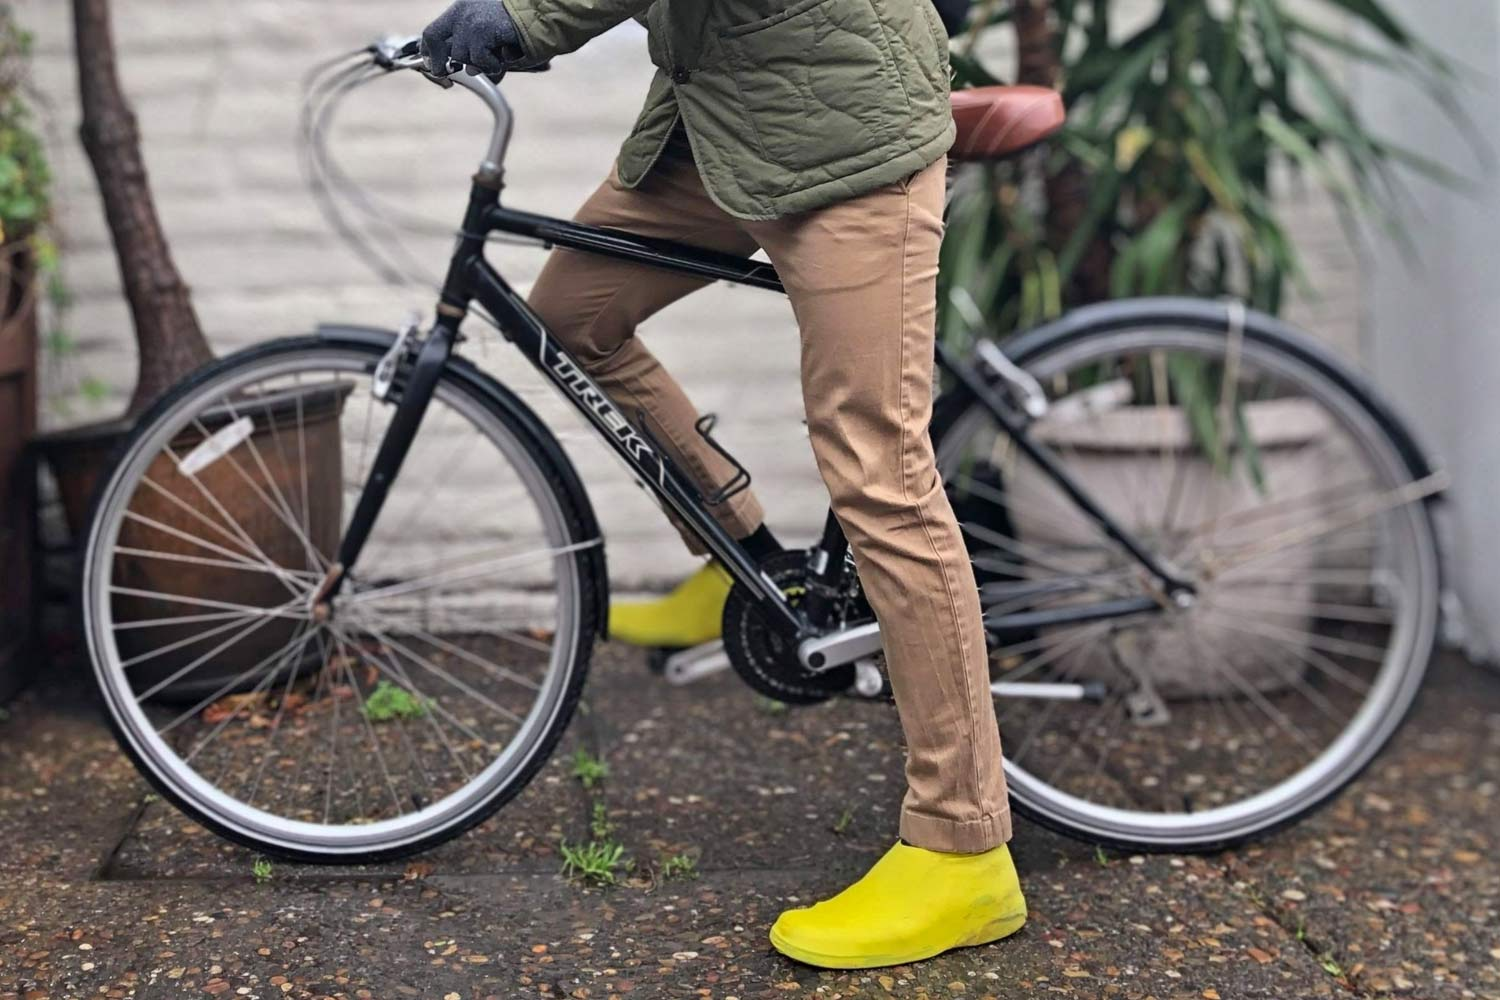 VeloToze Roam bike commuter shoe covers, waterproof latex flat pedal platform shoe covers for everyday protection